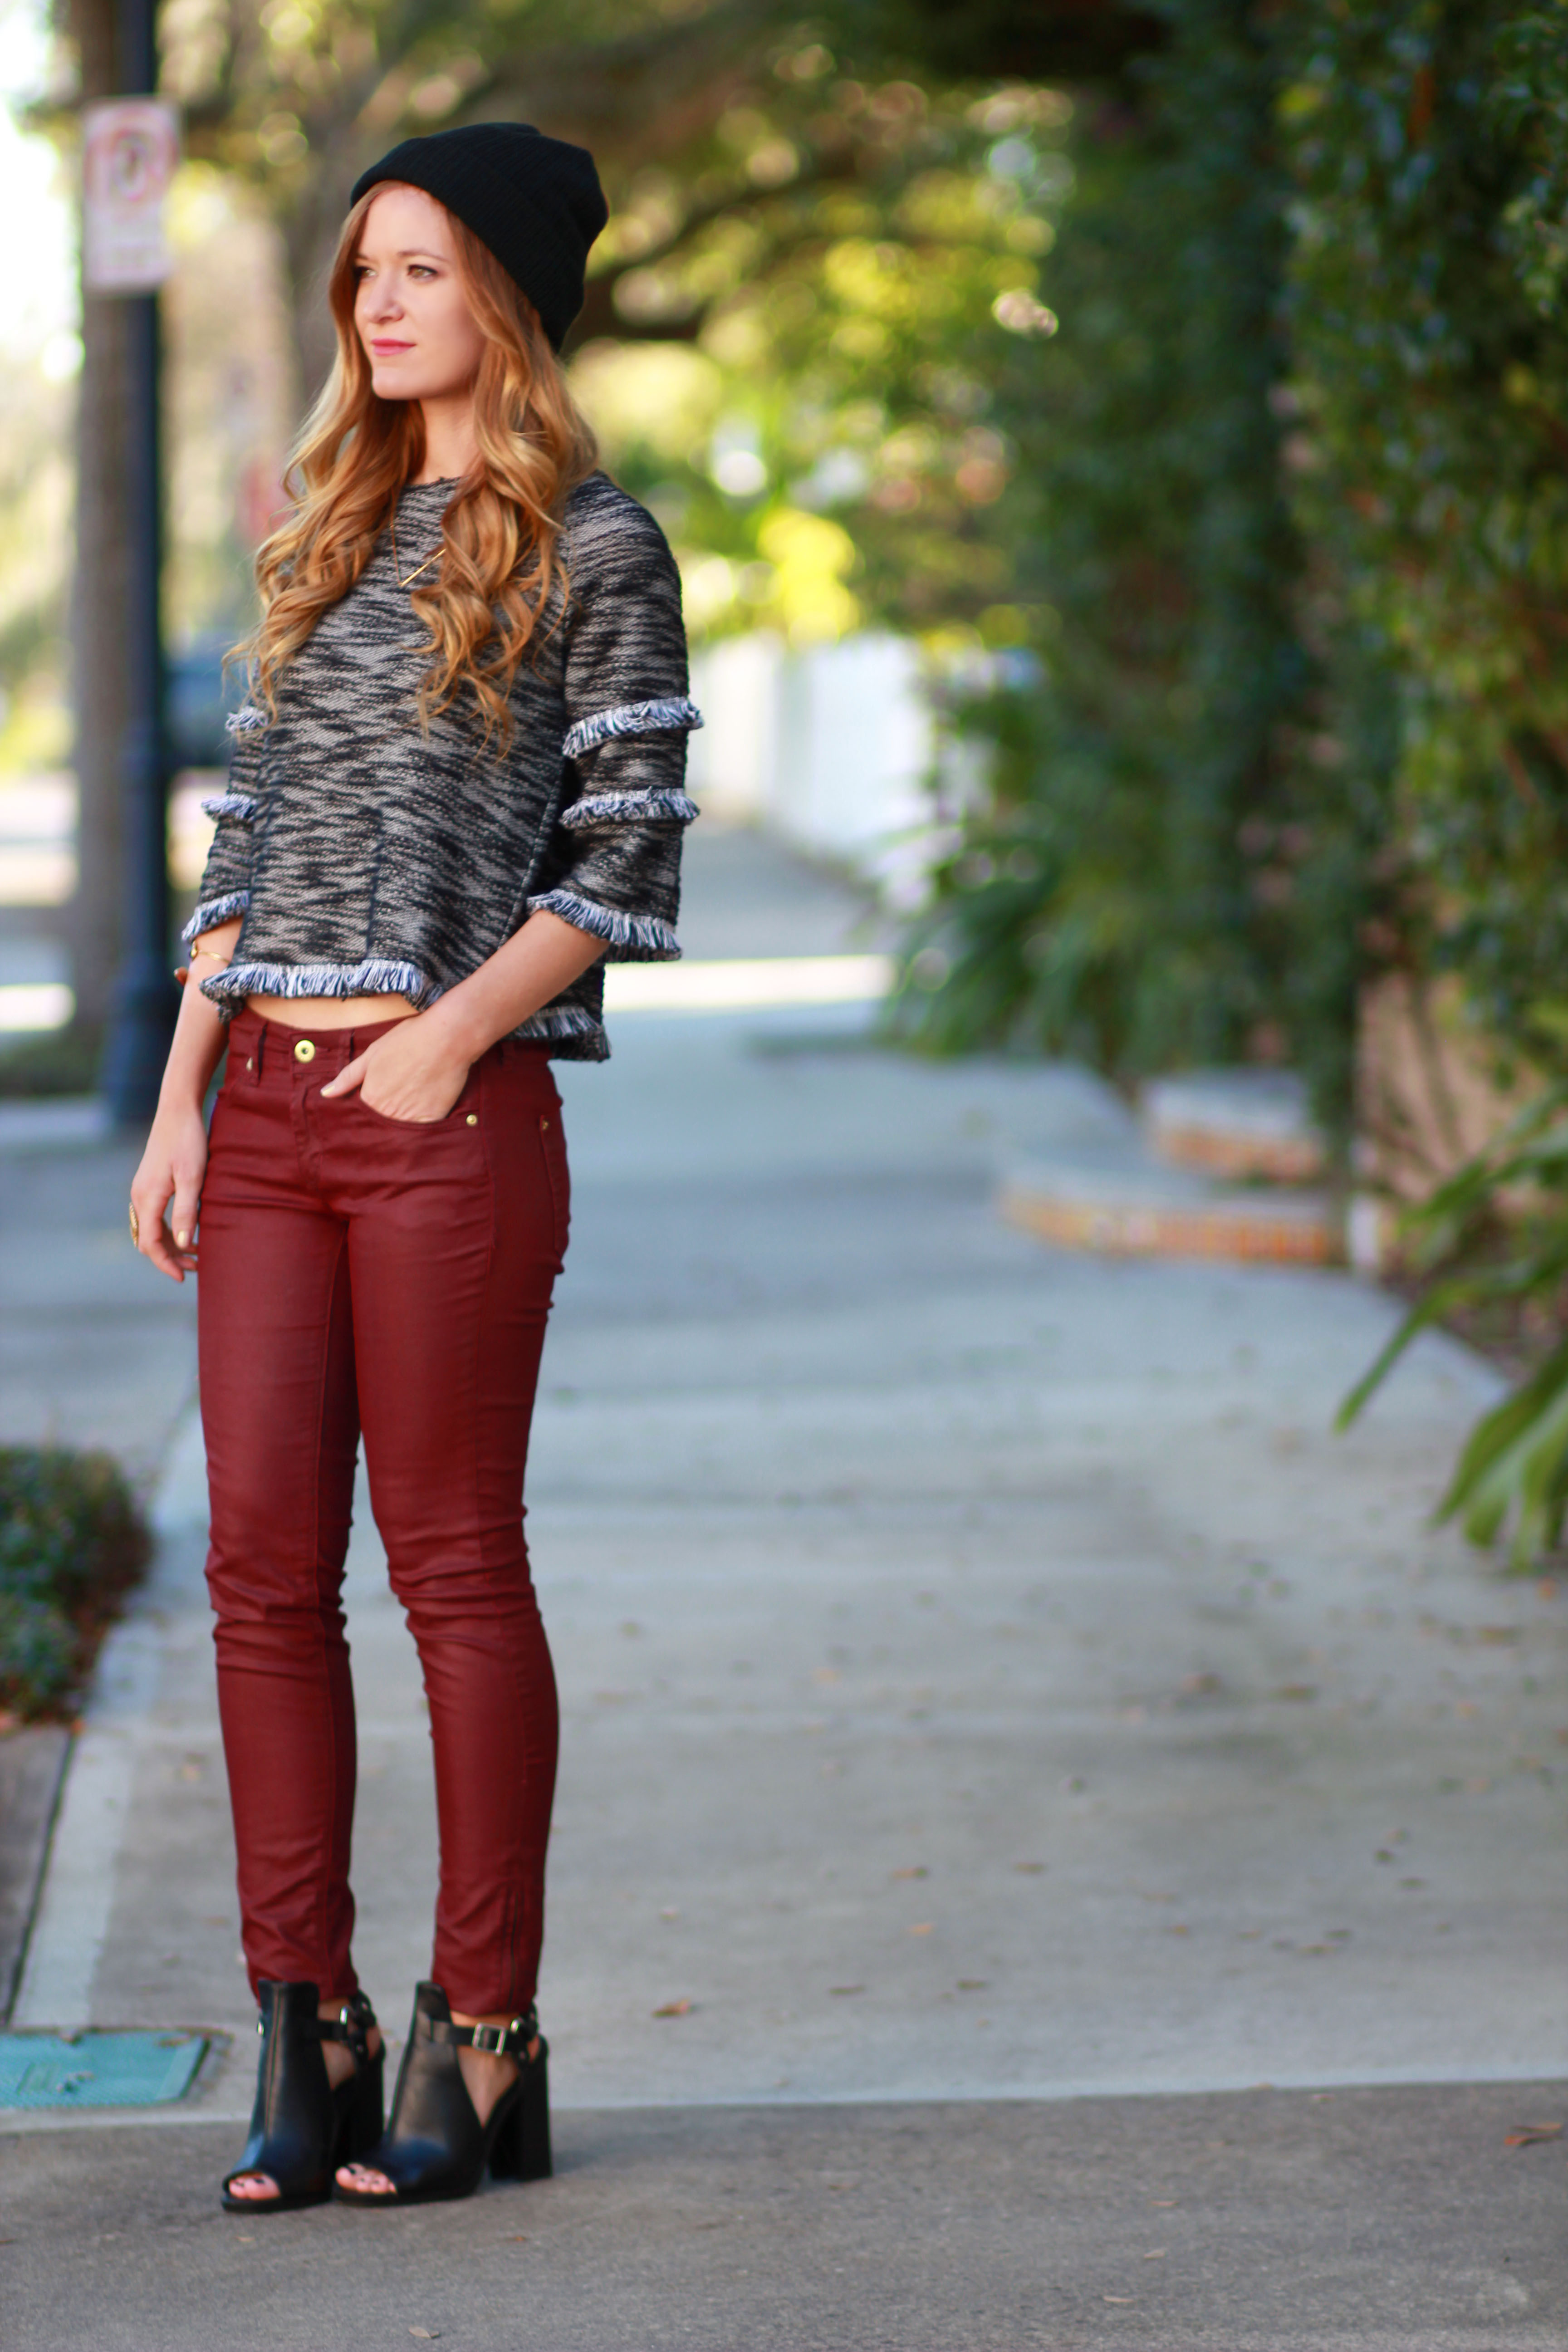 orlando, florida fashion blogger styles cropped sweater, h&m coated denim, windsor boots for a casual winter outfit